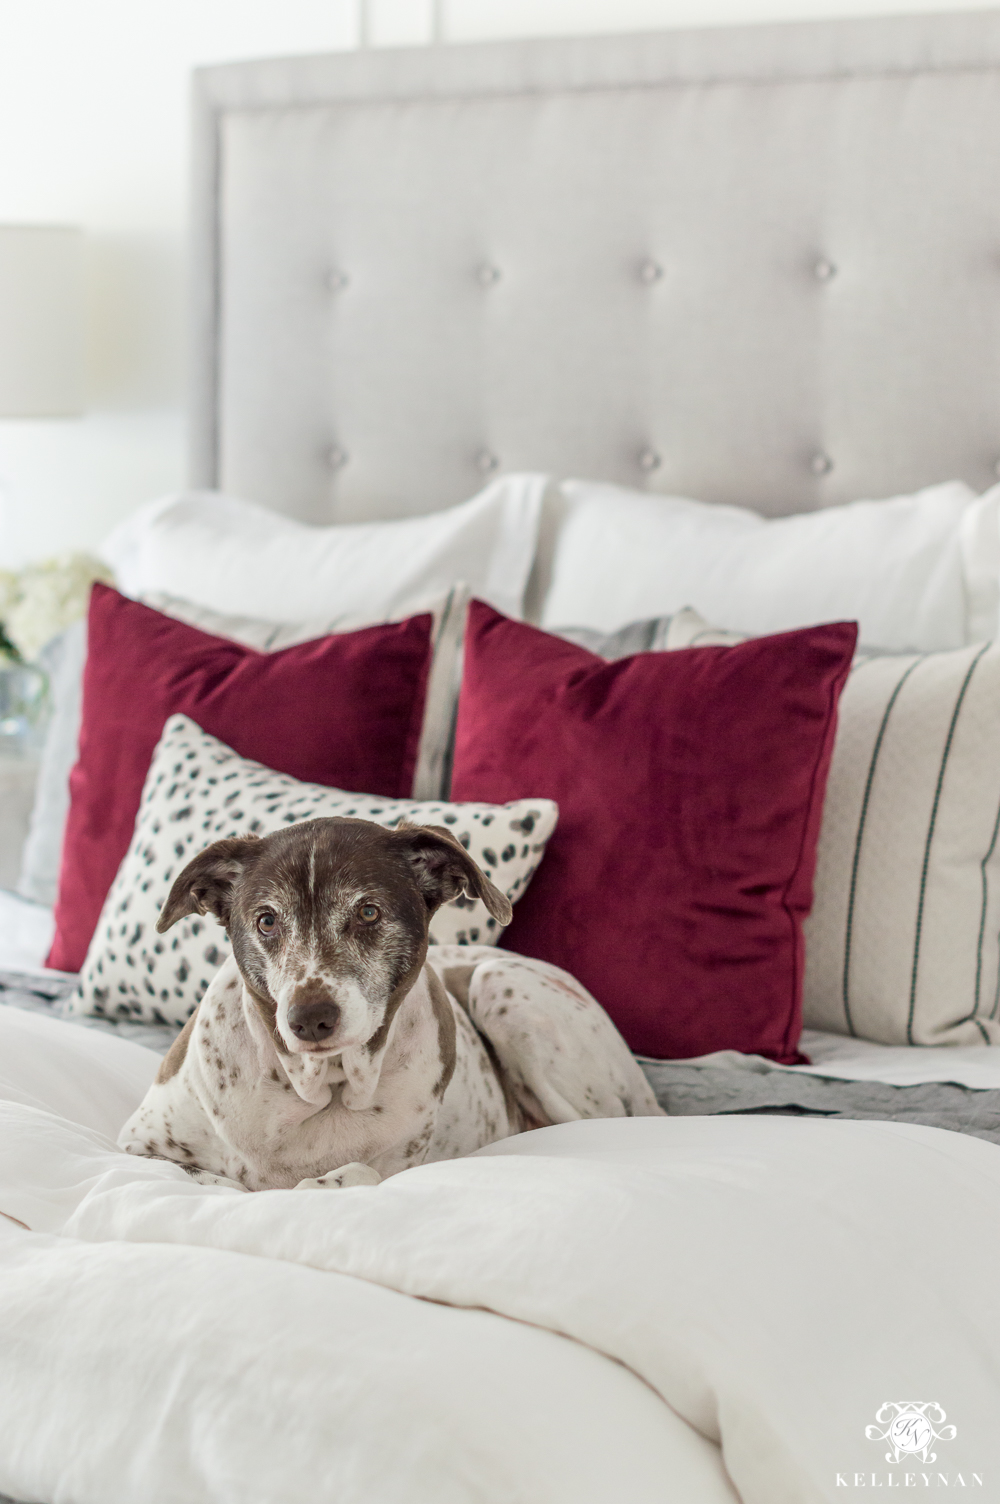 Dog on bed with red pillows